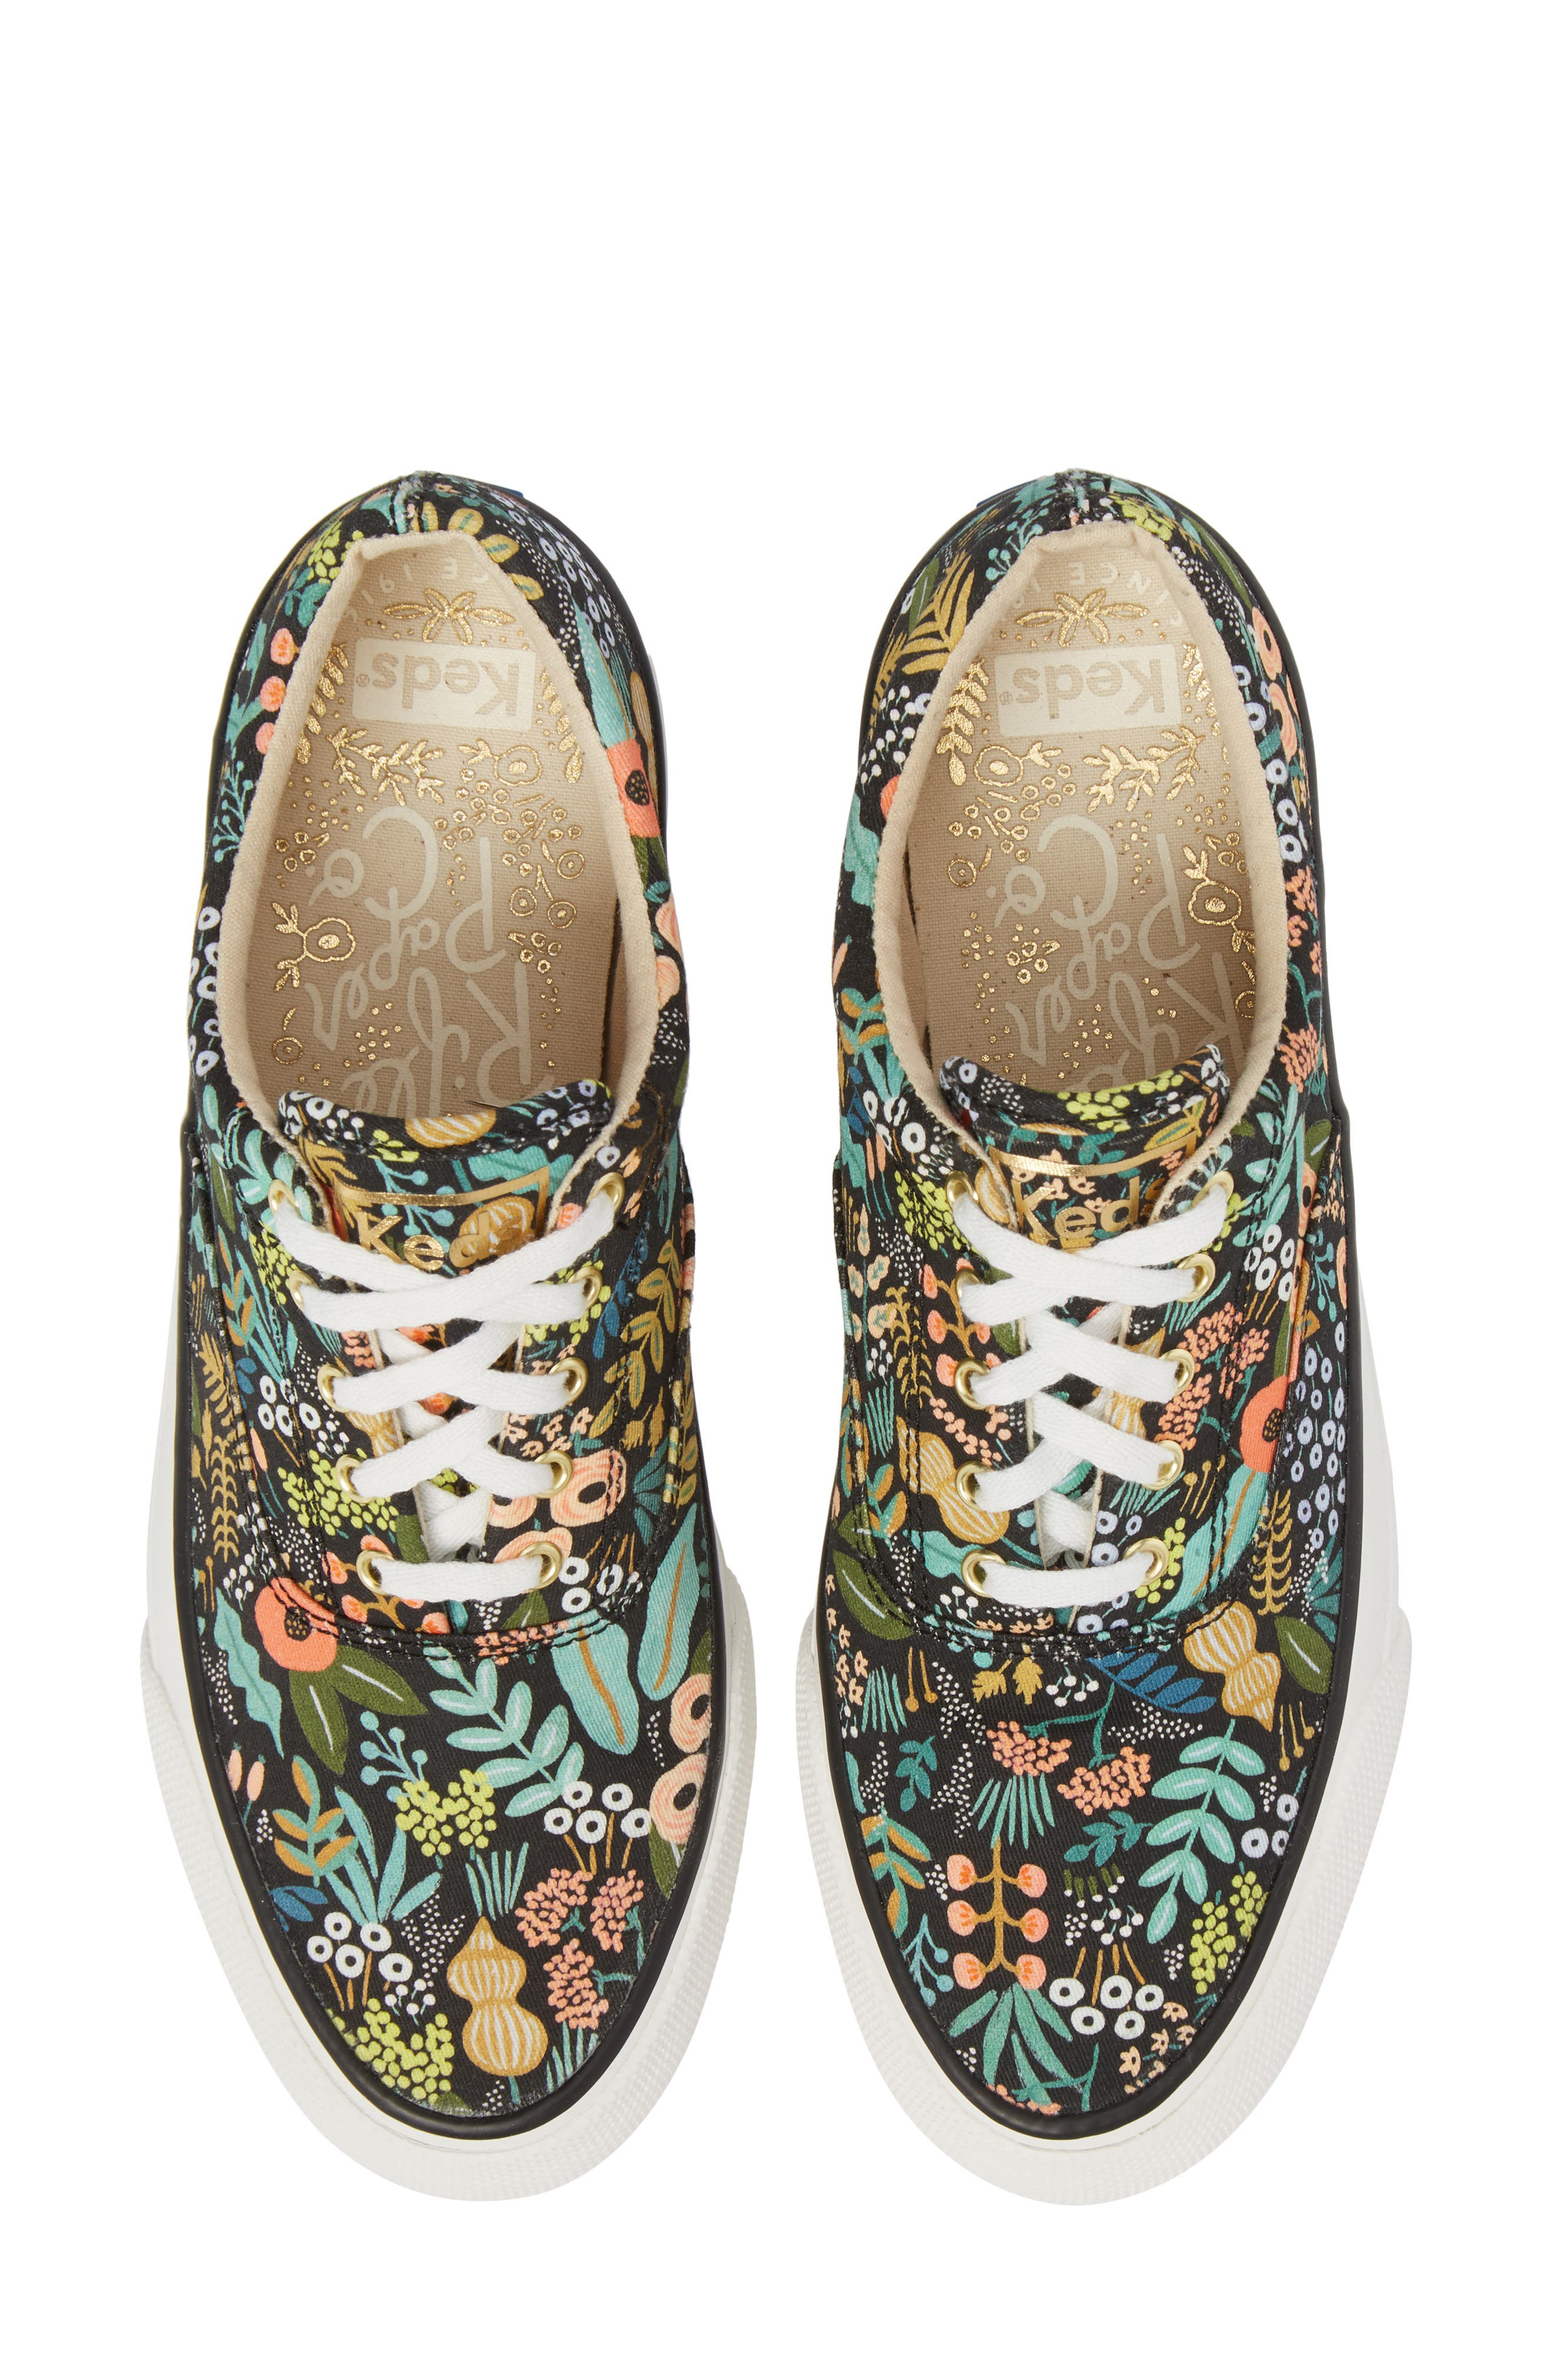 x Rifle Paper Co. Anchor Lively Floral Slip-On Sneaker,                             Main thumbnail 1, color,                             BLACK